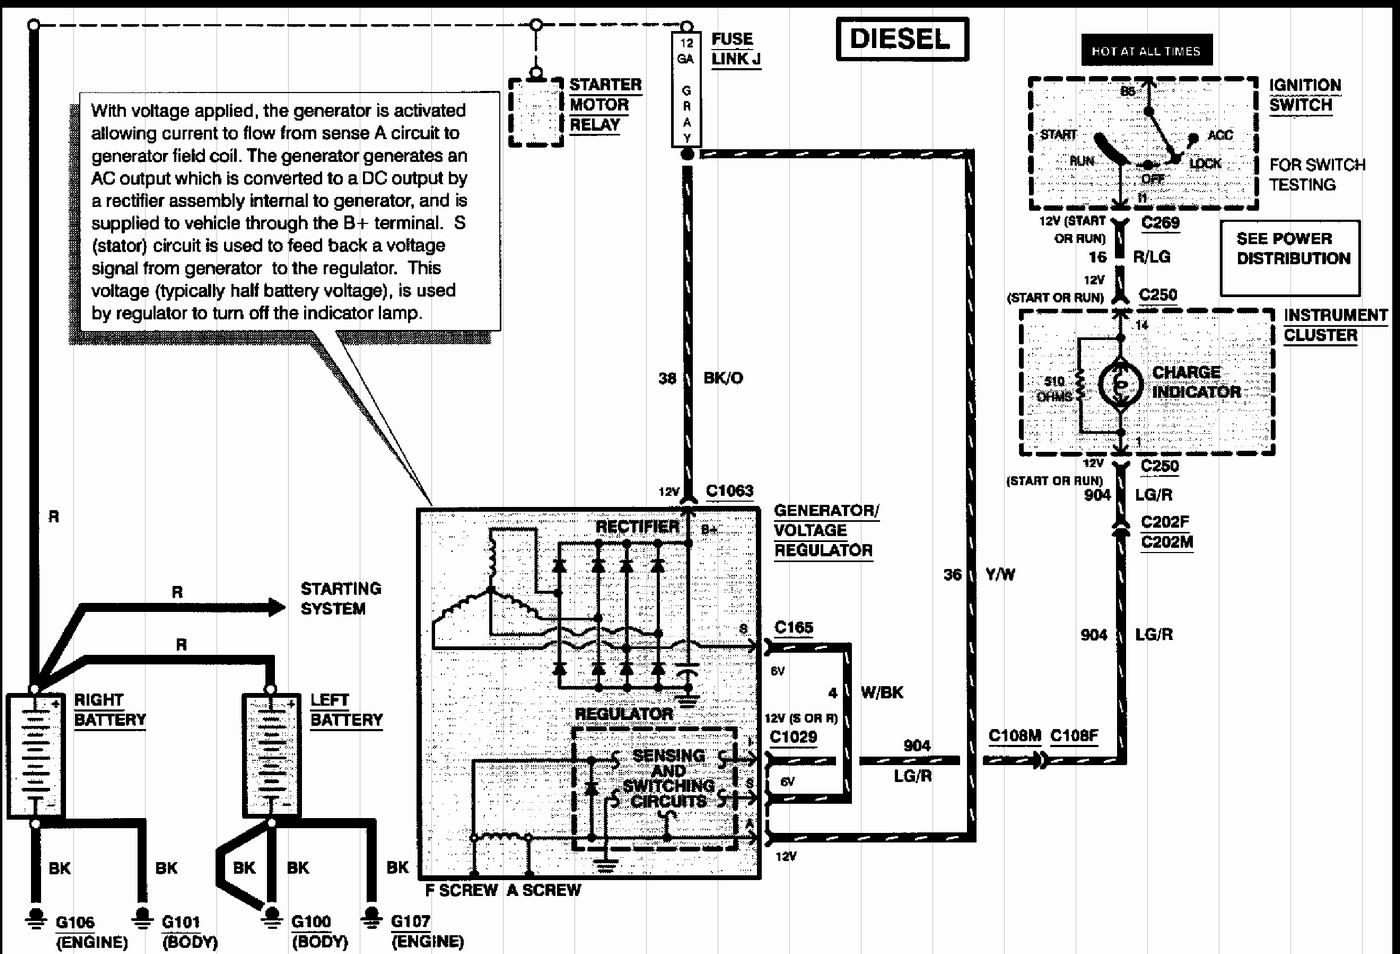 Ford F 350 Wiring Schematic in 2021 | Ford f250 diesel, Ford courier, Ford  diesel | Ford F 350 Engine Schematics |  | Pinterest